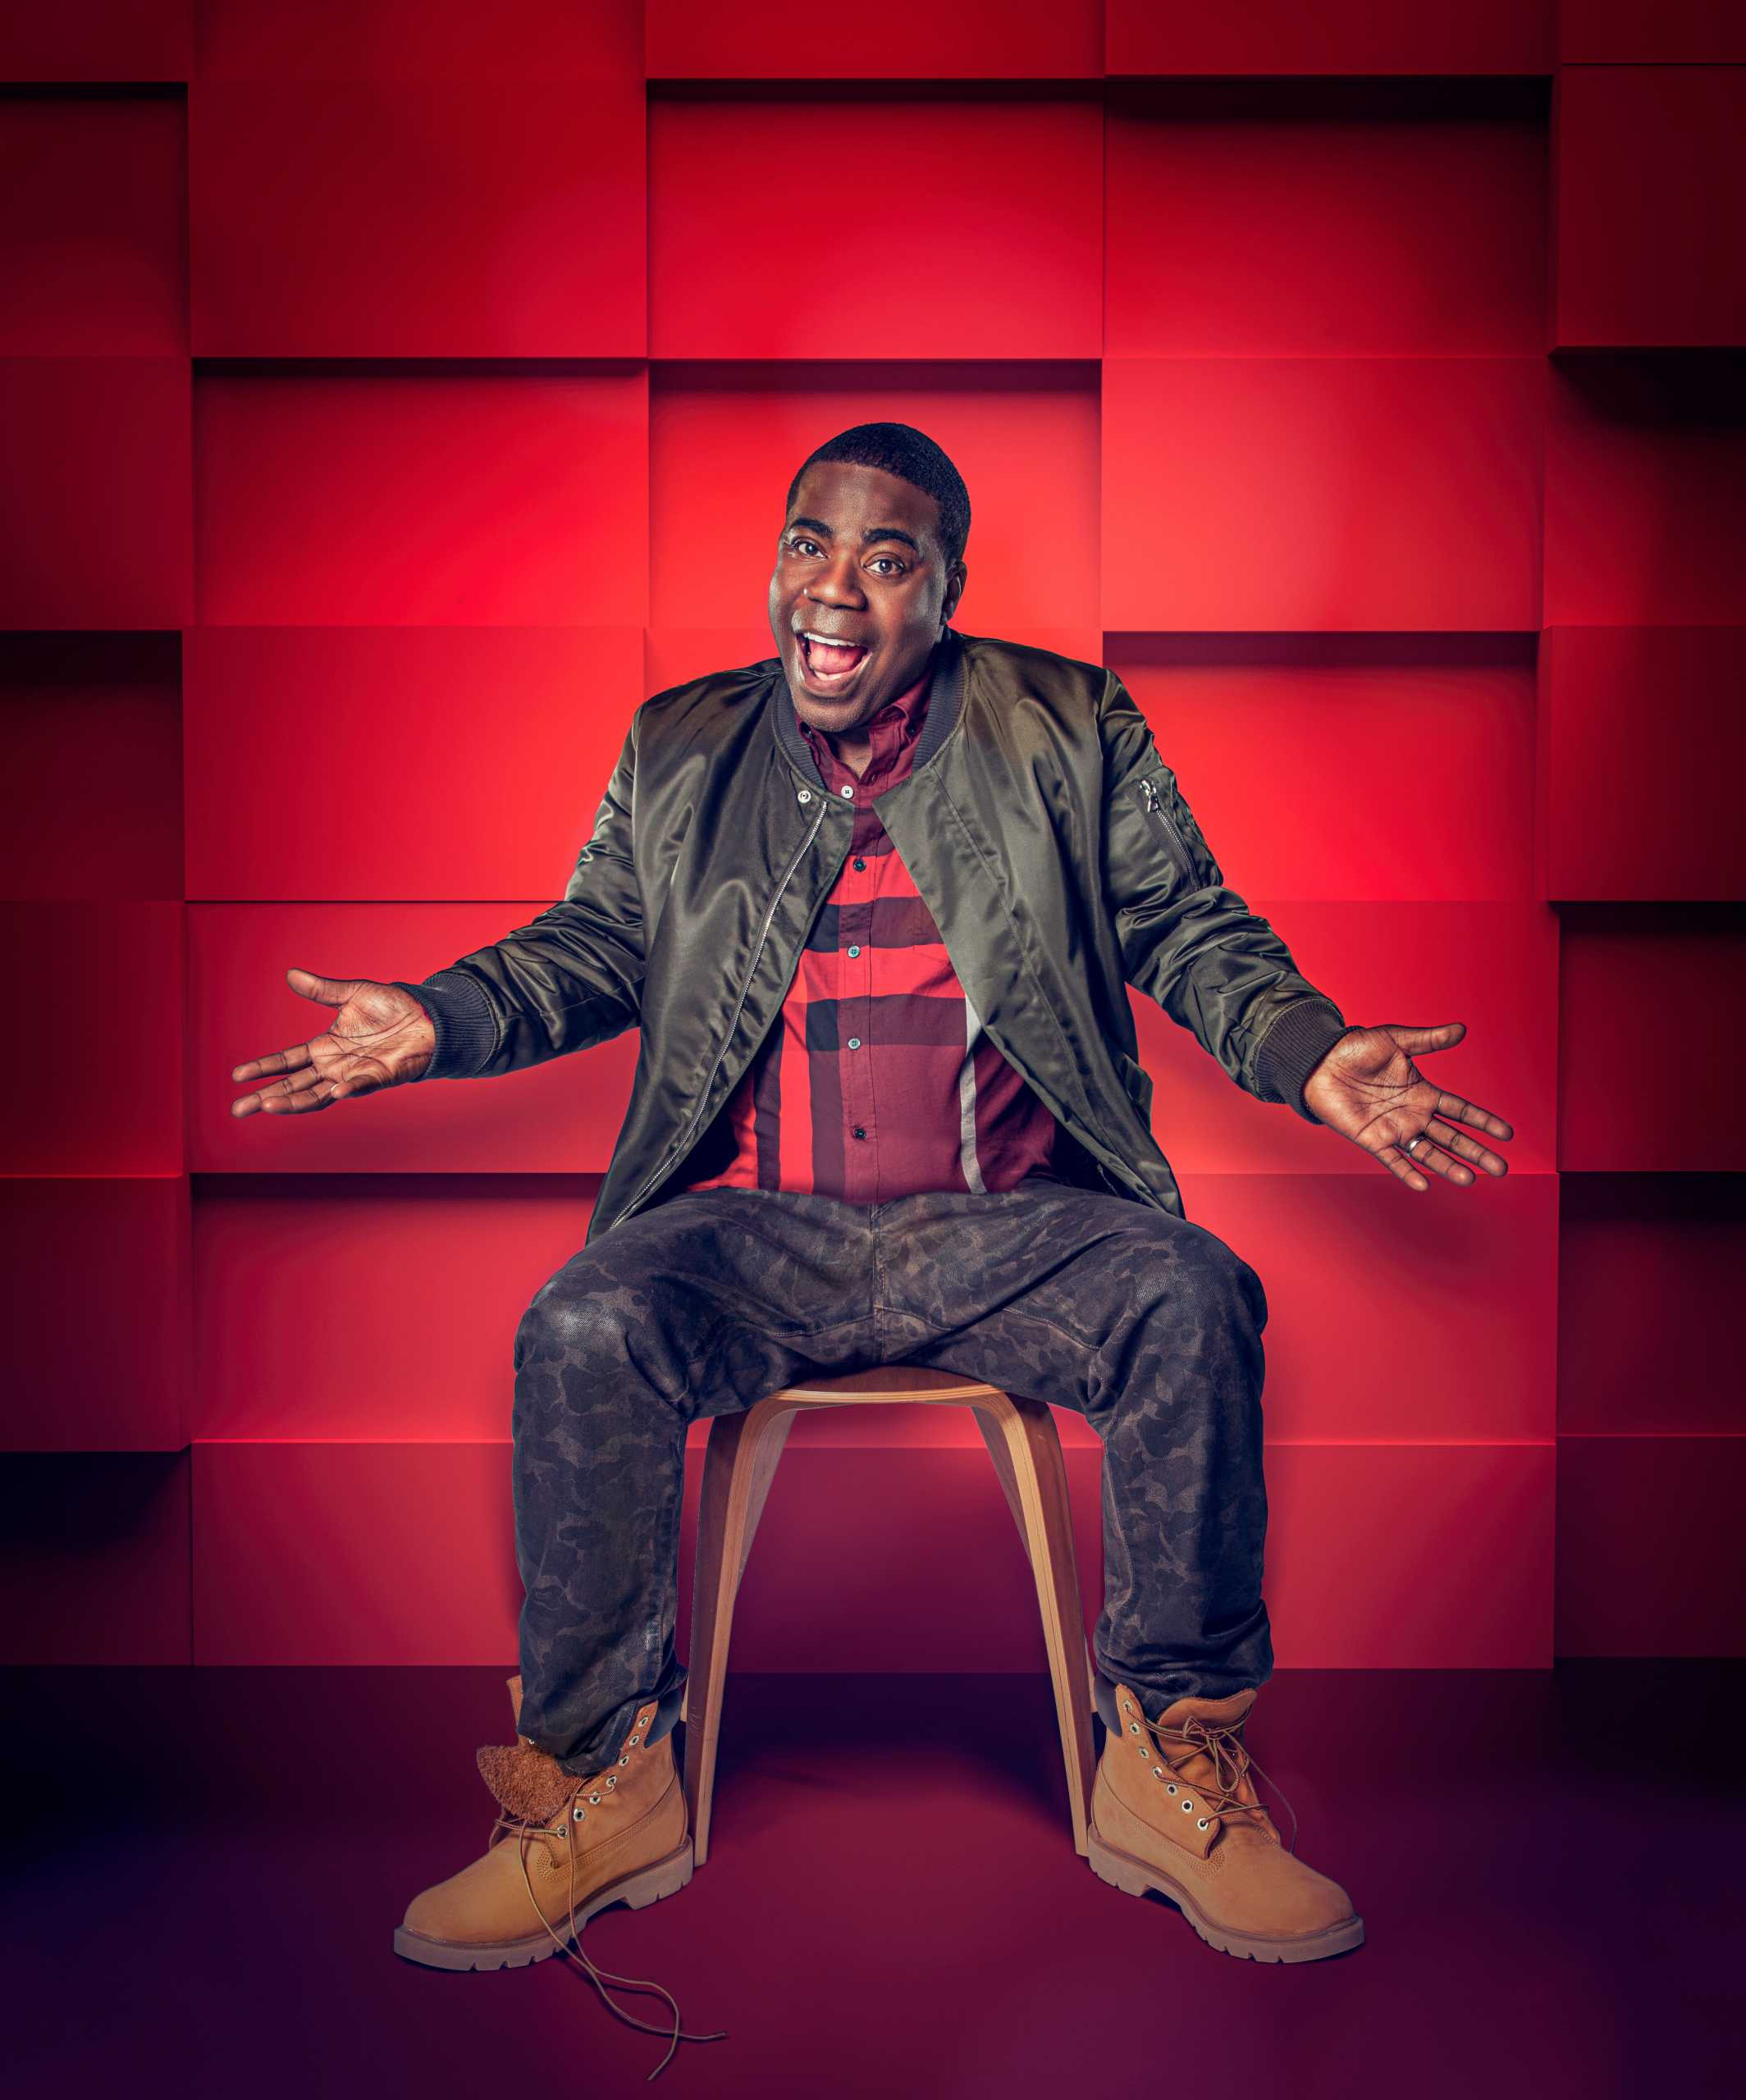 tracy morgan confirms highly anticipated return to australia & new zealand with the 'no disrespect' tour